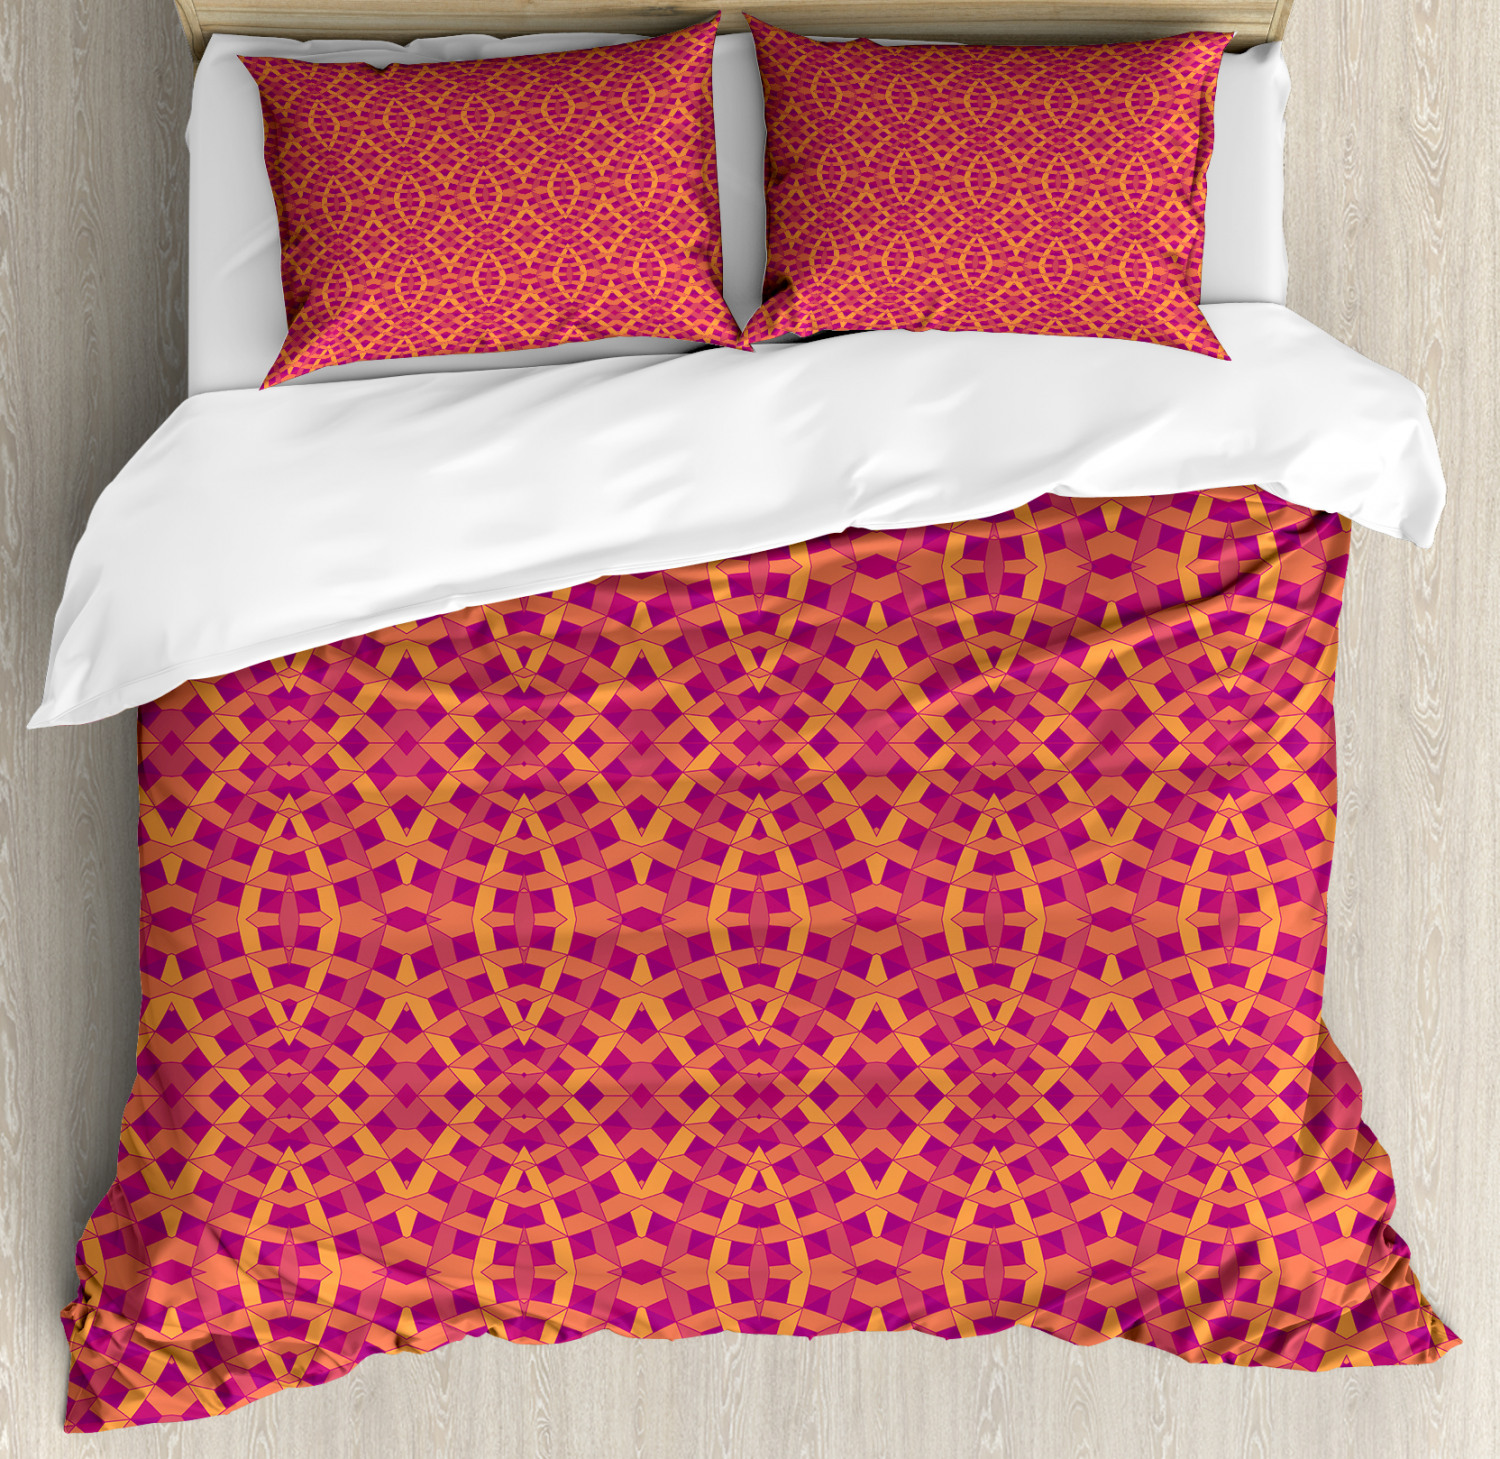 Geometric Duvet Cover Set with Pillow Shams Expressionist Pattern Print